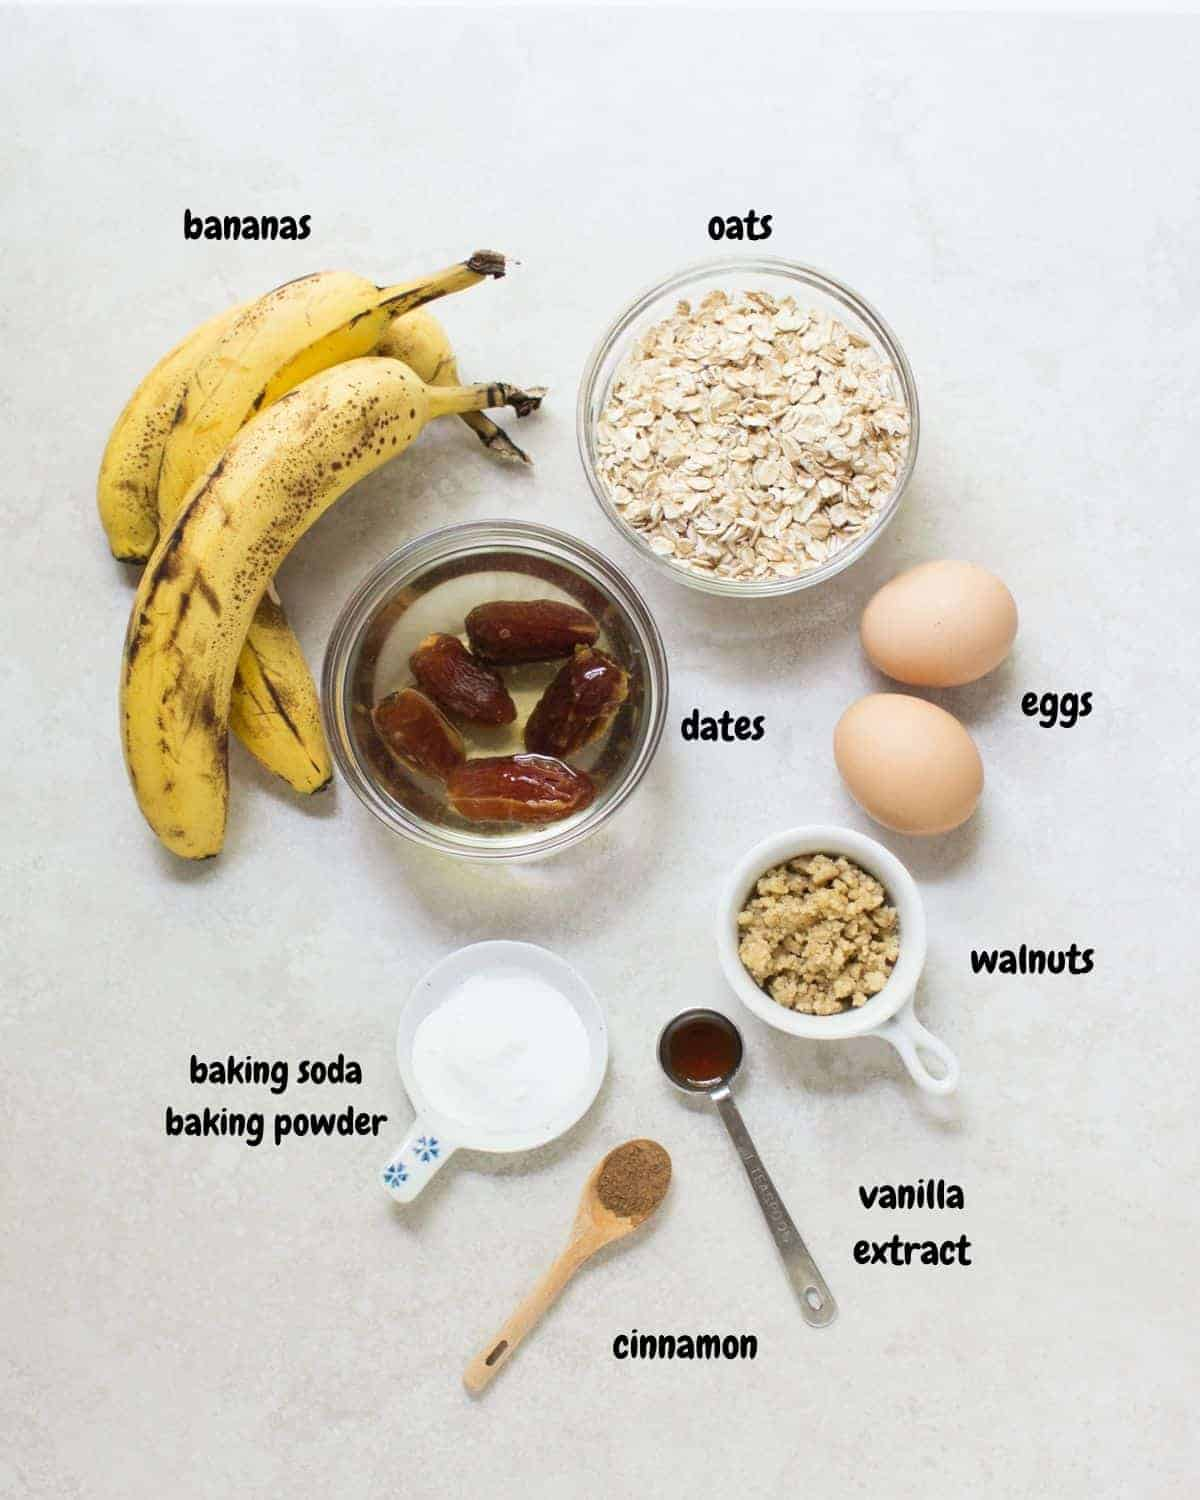 all the ingredients laid out on a white background